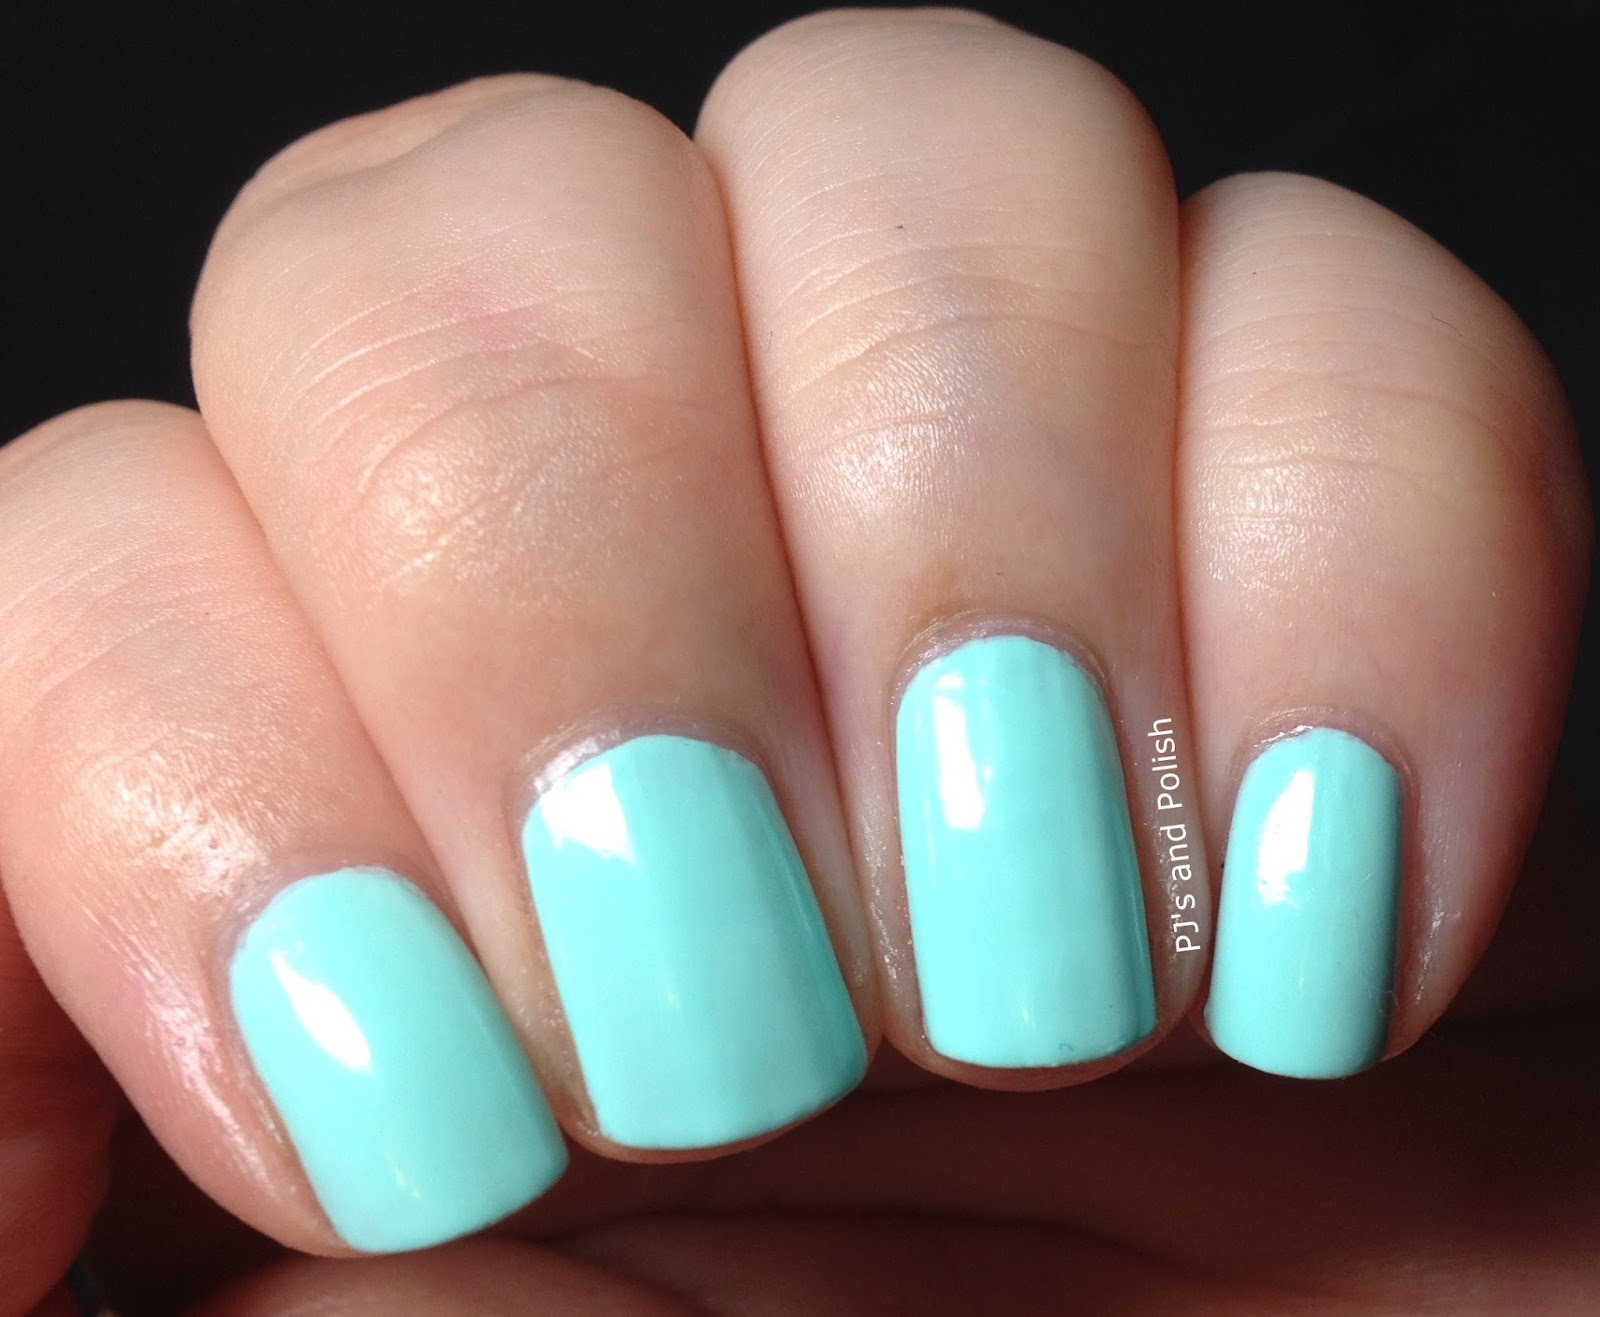 Swatch and Review China Glaze At Vase Value City Flourish Peonies & Park Ave HK Girl